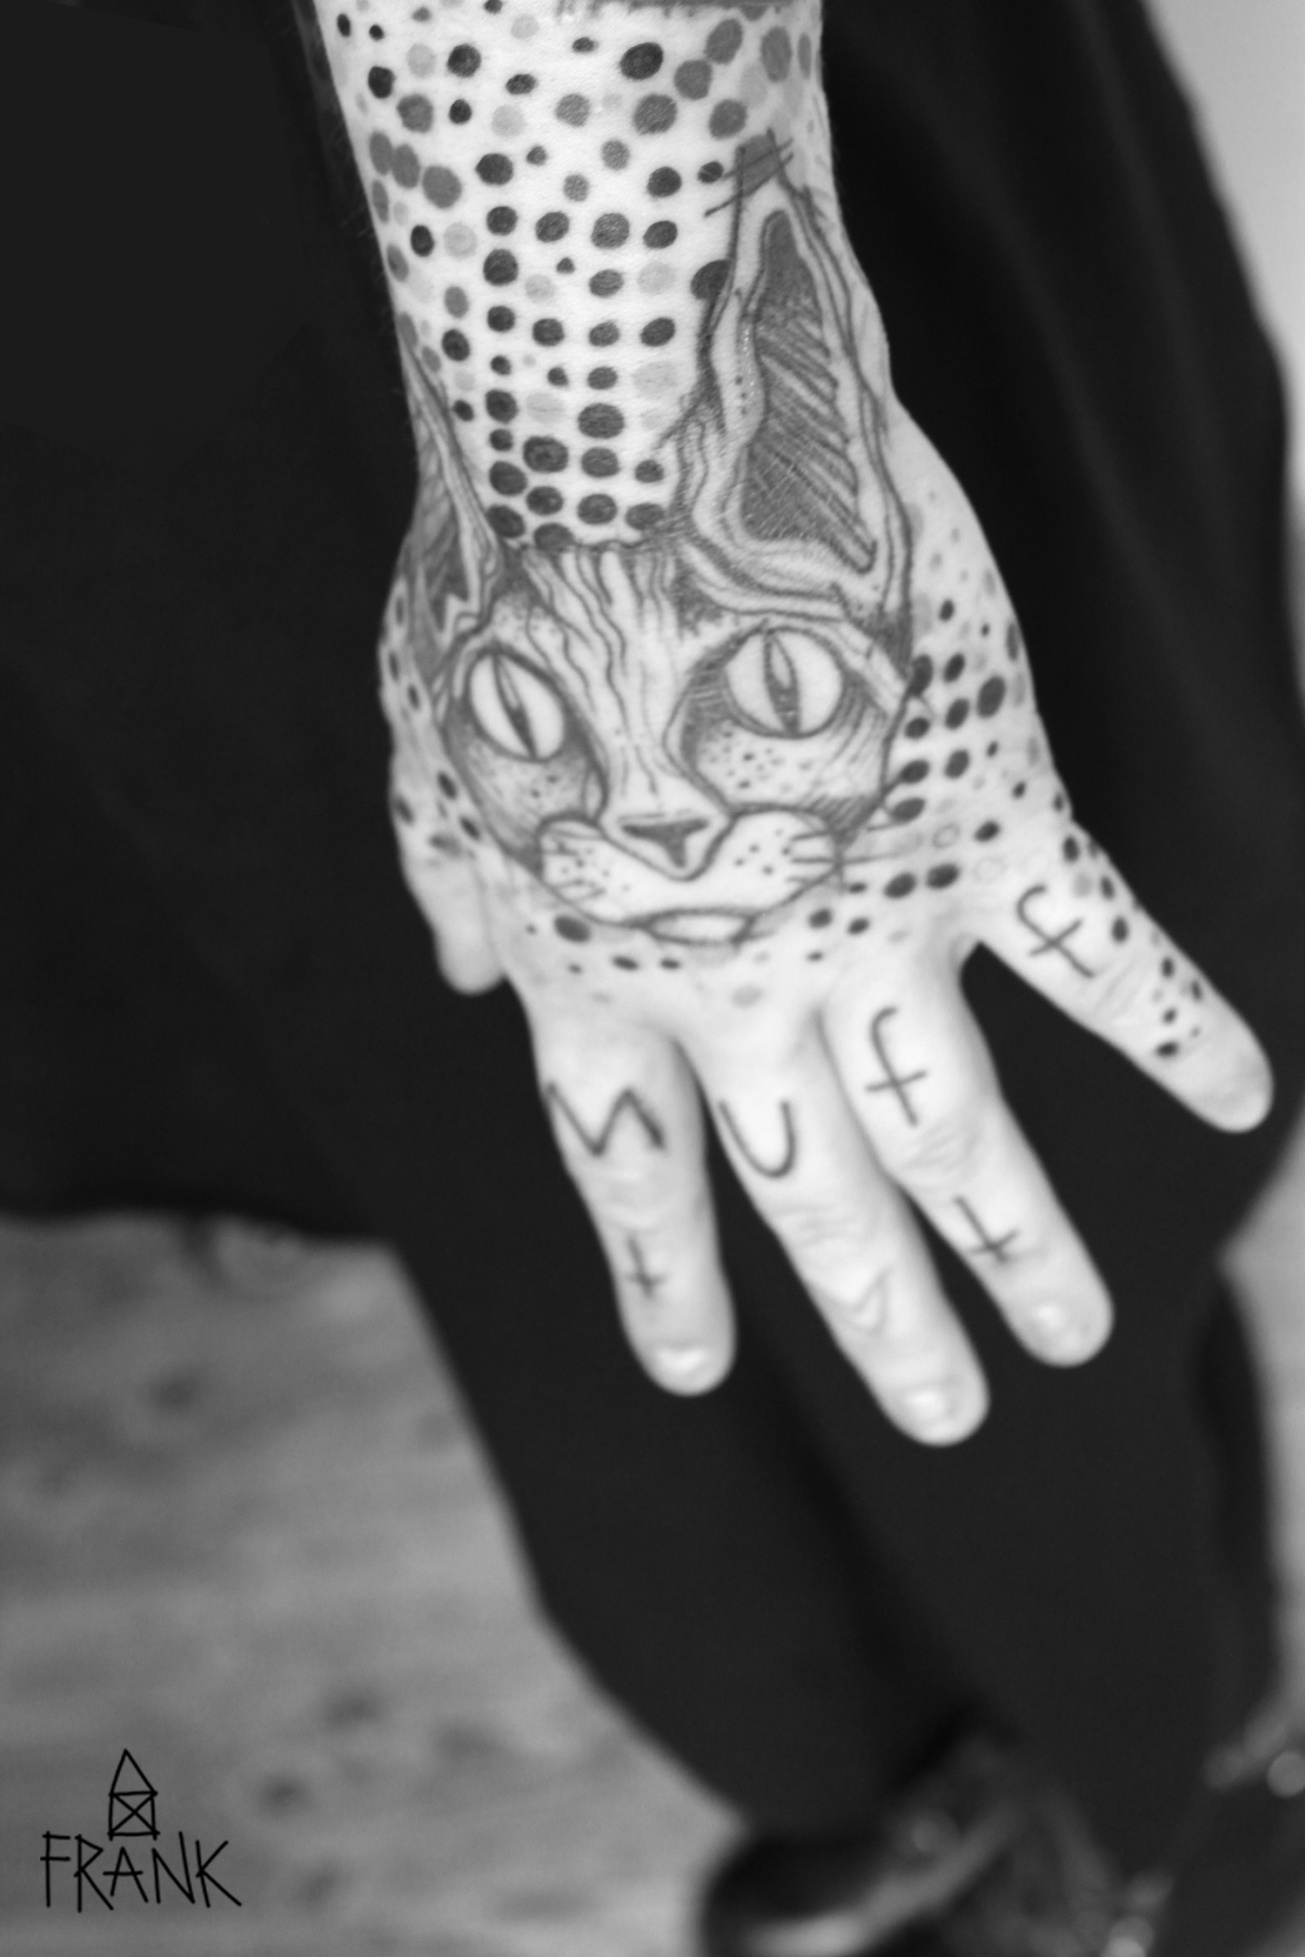 Miriam_Frank_Tatto_Cat_Katze_hand_dot